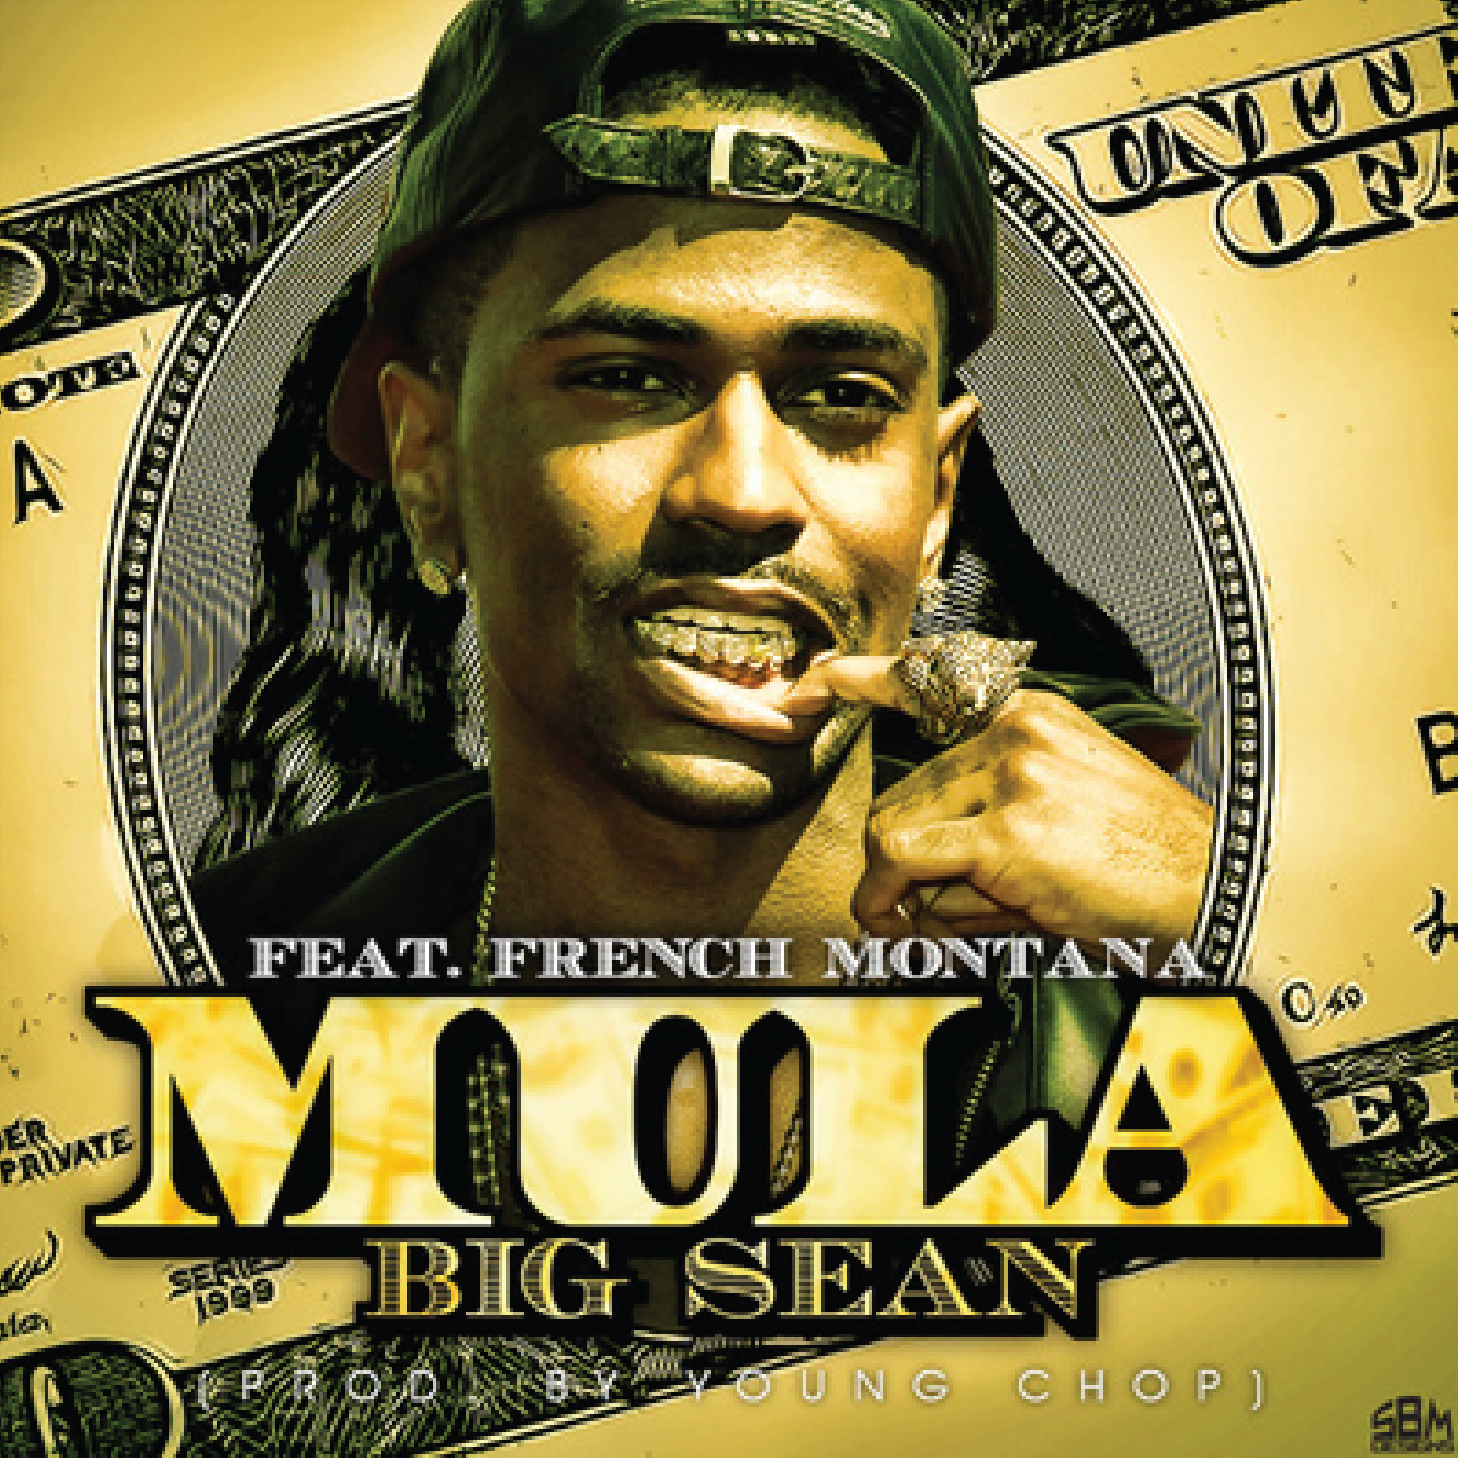 G.O.O.D. MUSIC/DEF Jam artist Big Sean collabs with French Montana on new single, Co-Written by 1916's own Alexander 'Xplicit' Izquierdo.